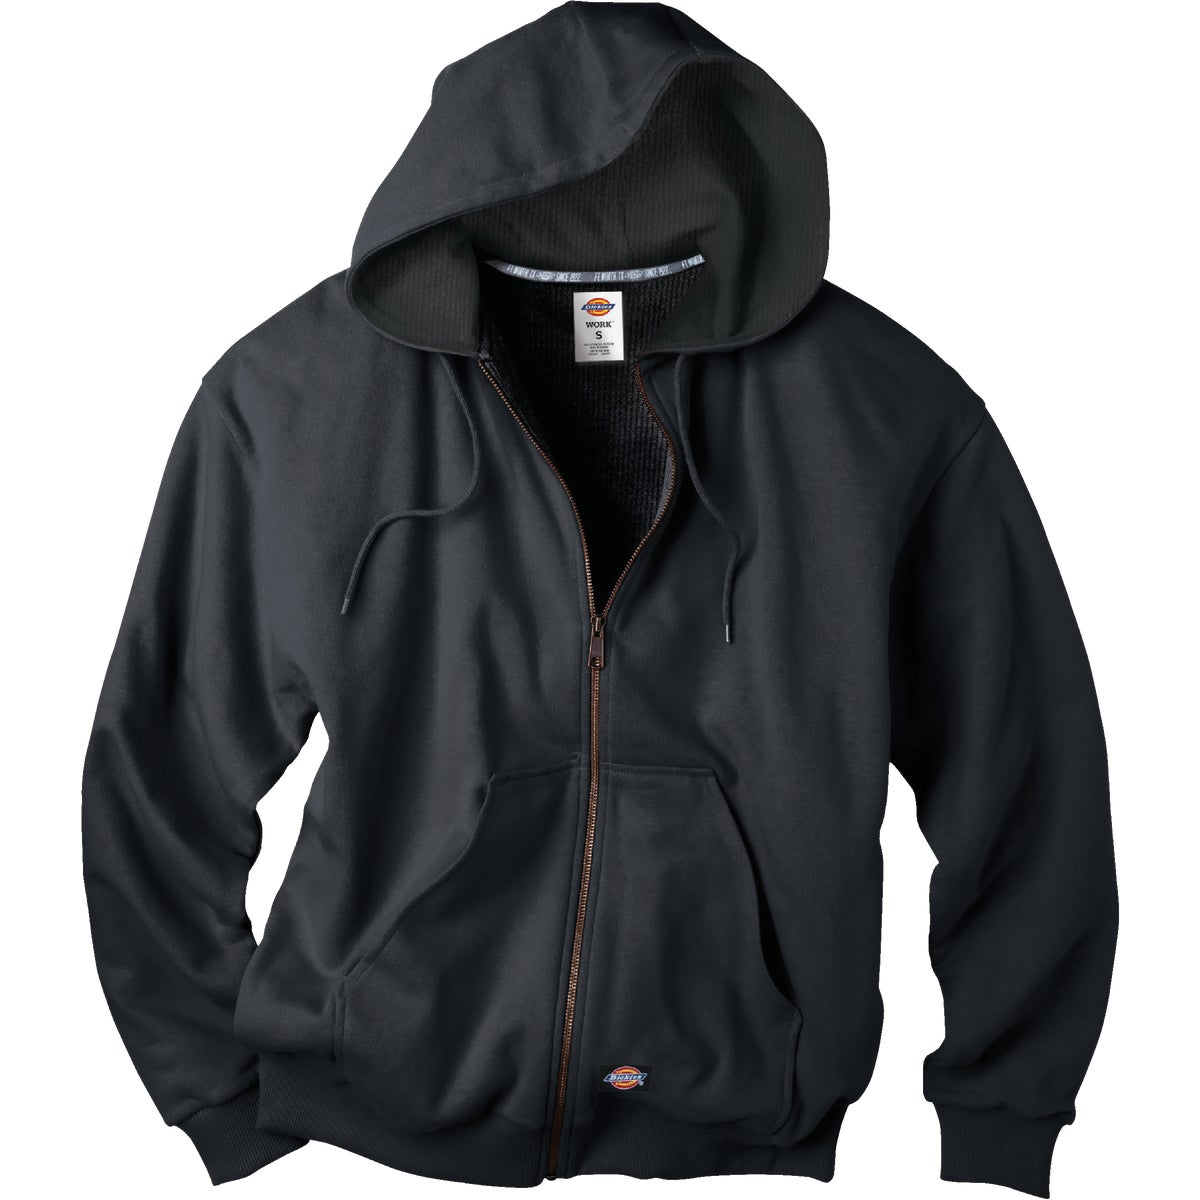 MED BLK HOOD FLC JACKET - TW382BK-M by Dickies